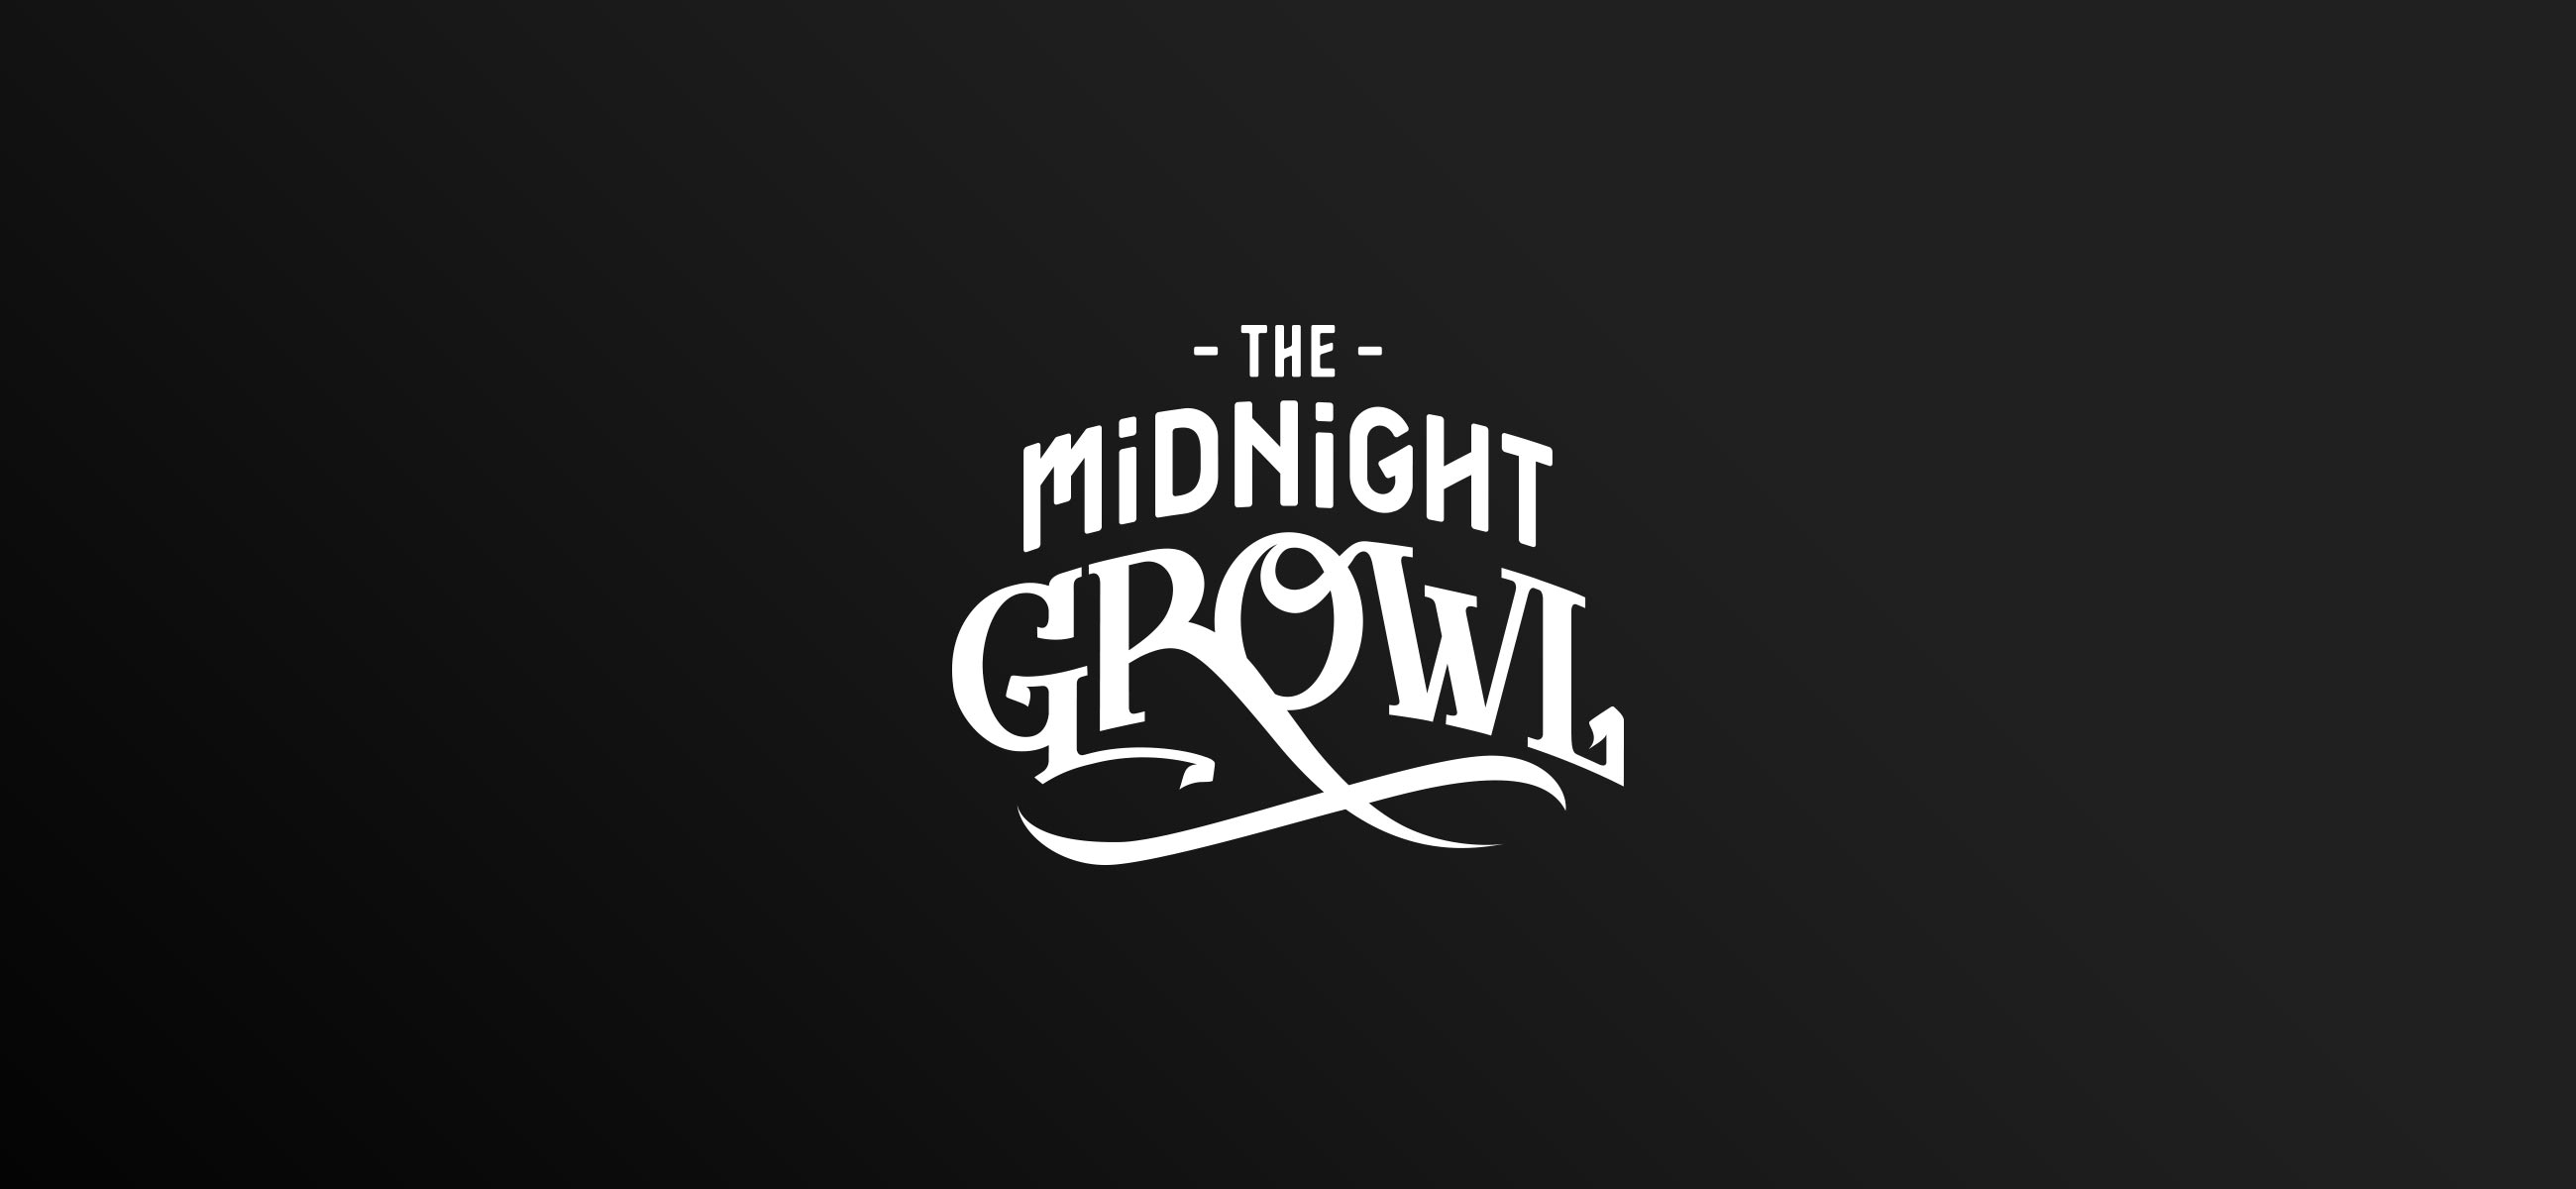 midnight_growl_01_parallele_graphique